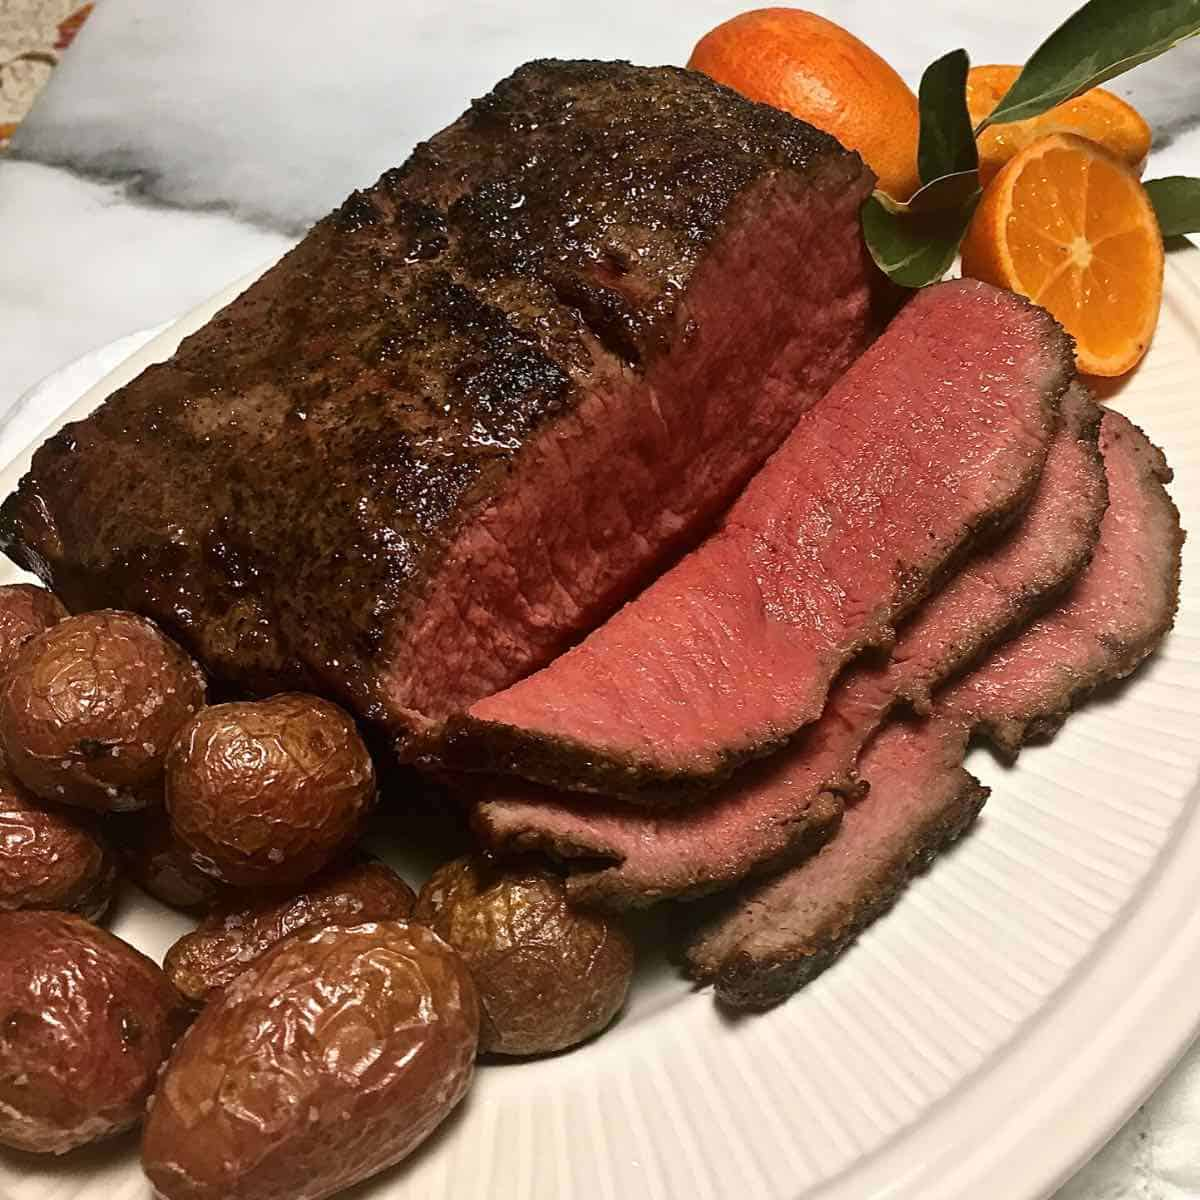 Sliced New York Strip Roast with small potatoes on a white plate.